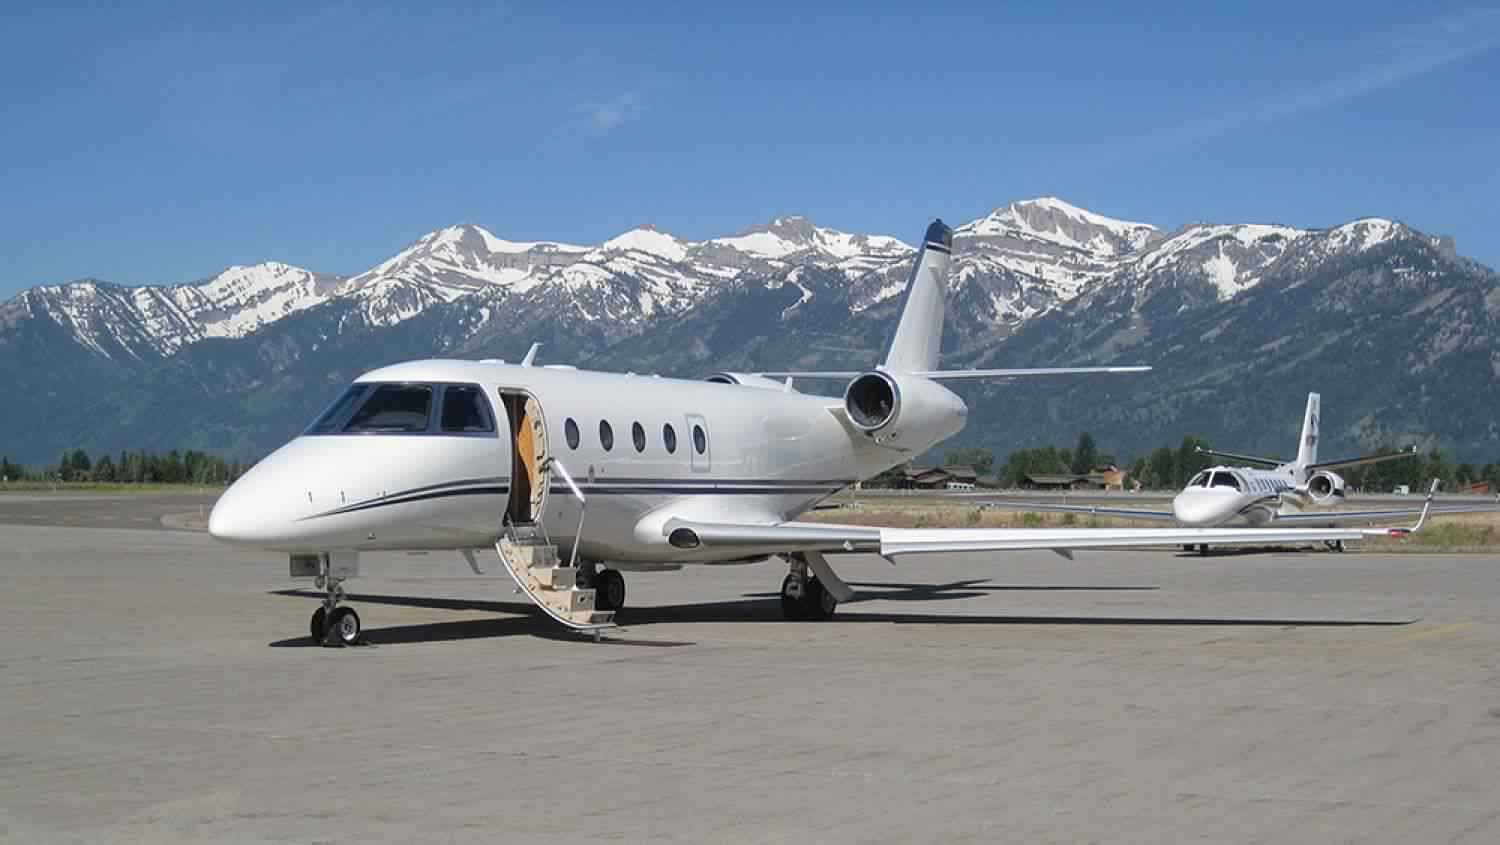 Boutique Aviation-Marketing Firm Joins Causeway Corporate Centre